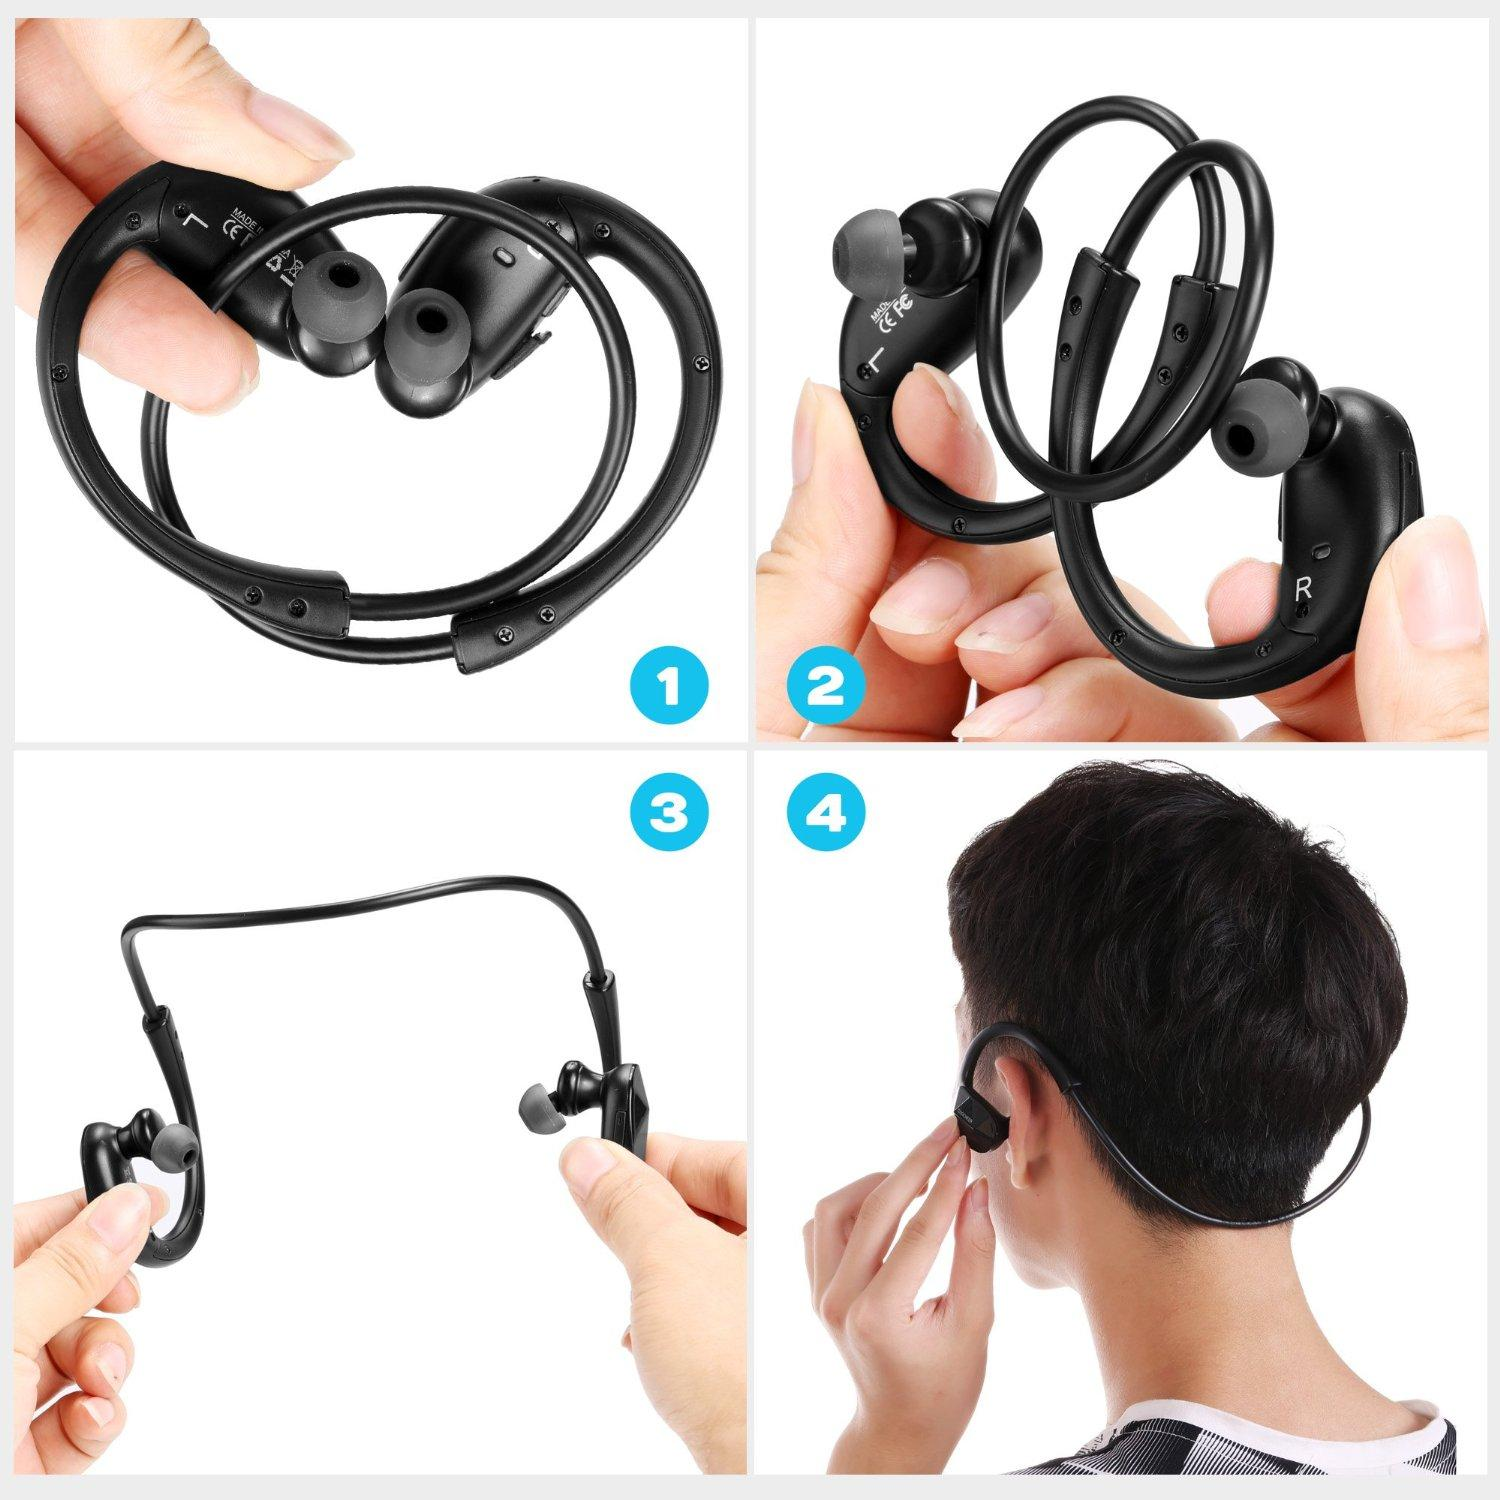 Coocheer Wireless Bluetooth 4.1 Stereo Sports Headphones